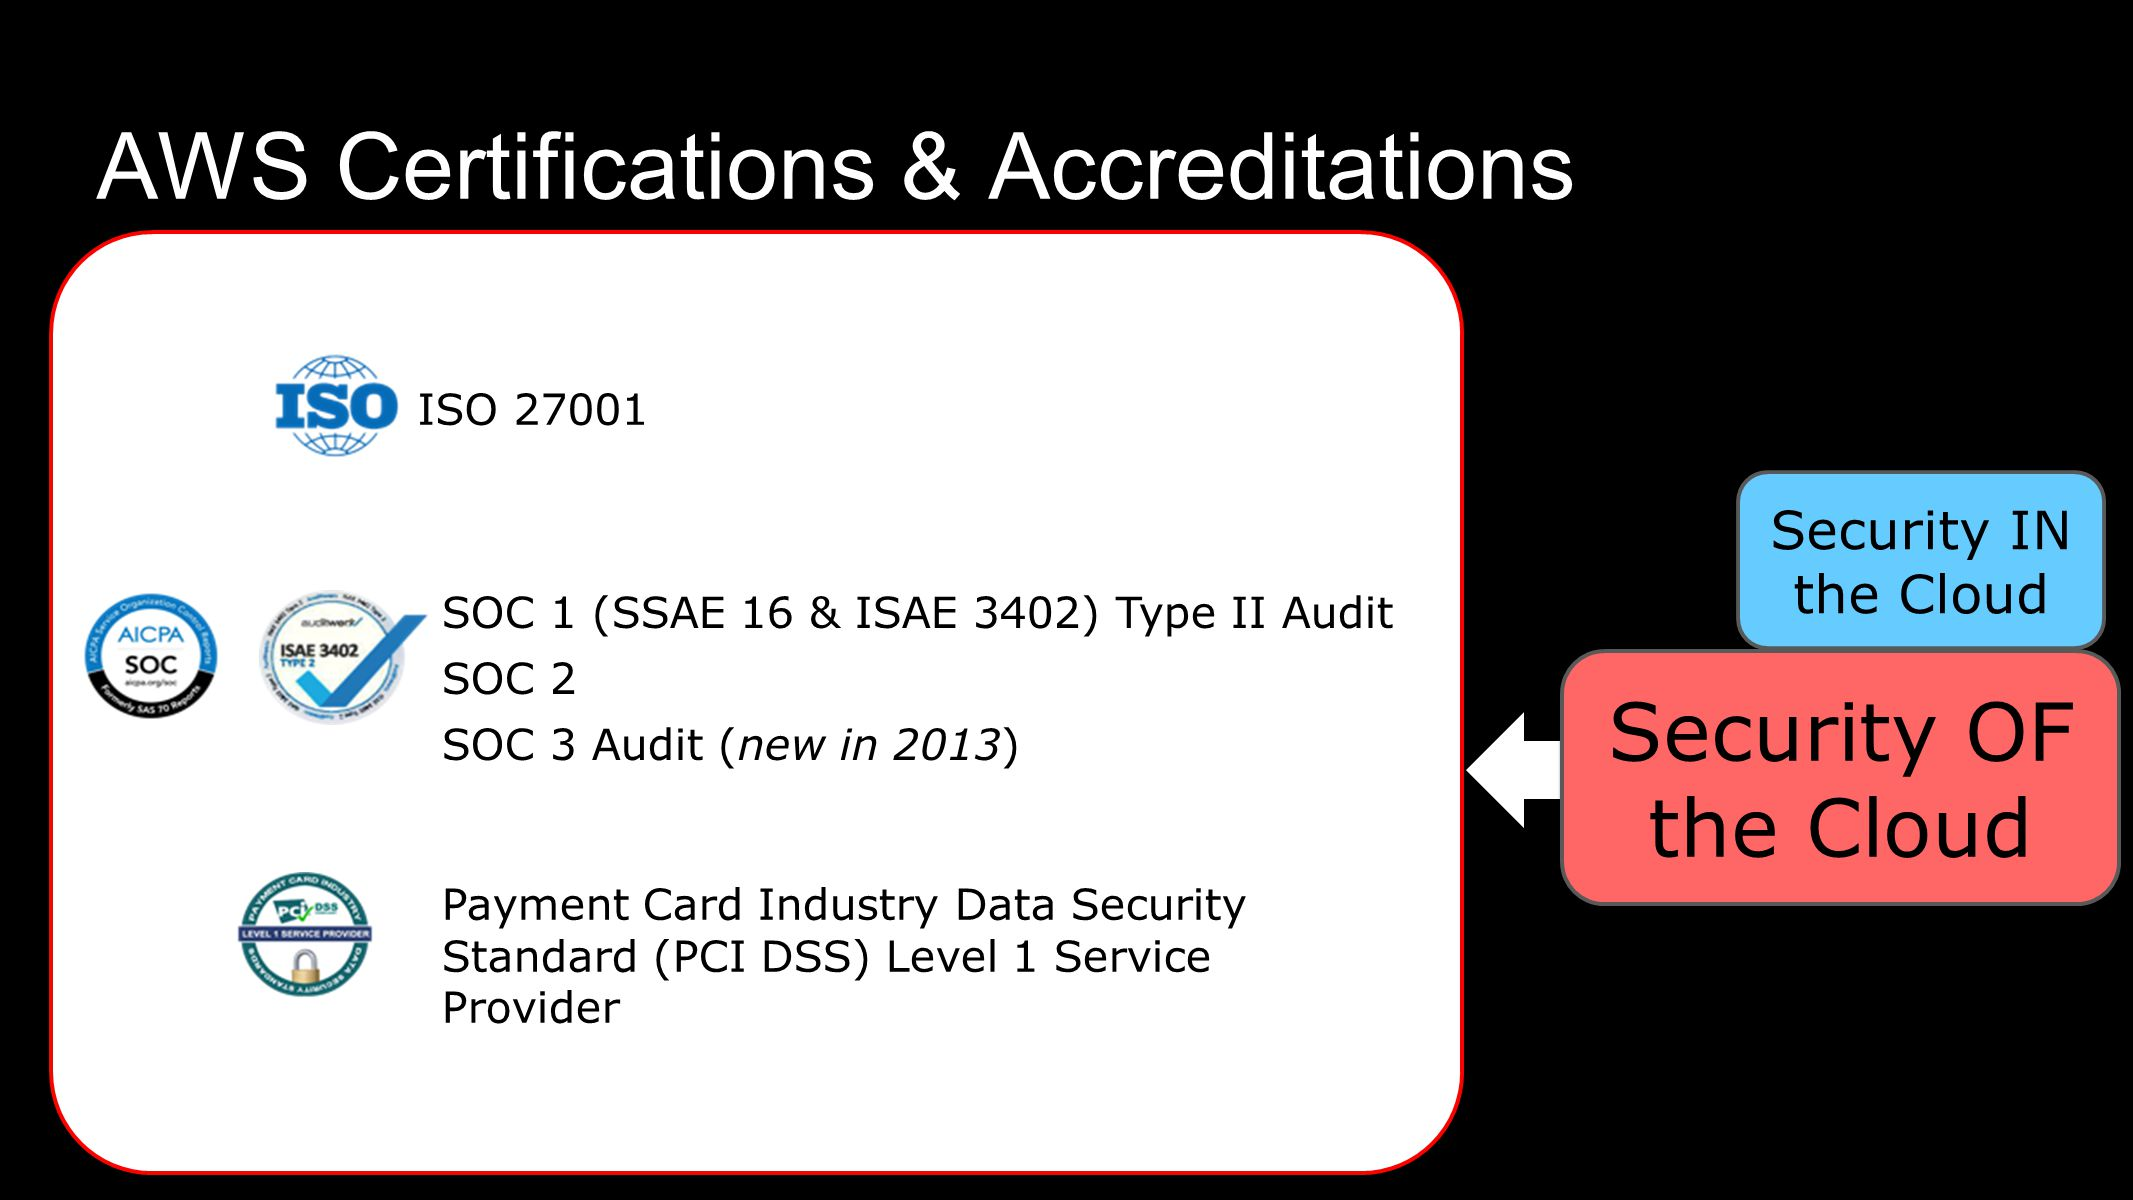 AWS Certifications & Accreditations SOC 1 (SSAE 16 & ISAE 3402) Type II Audit SOC 2 SOC 3 Audit (new in 2013) ISO 27001 Payment Card Industry Data Security Standard (PCI DSS) Level 1 Service Provider Security IN the Cloud Security OF the Cloud